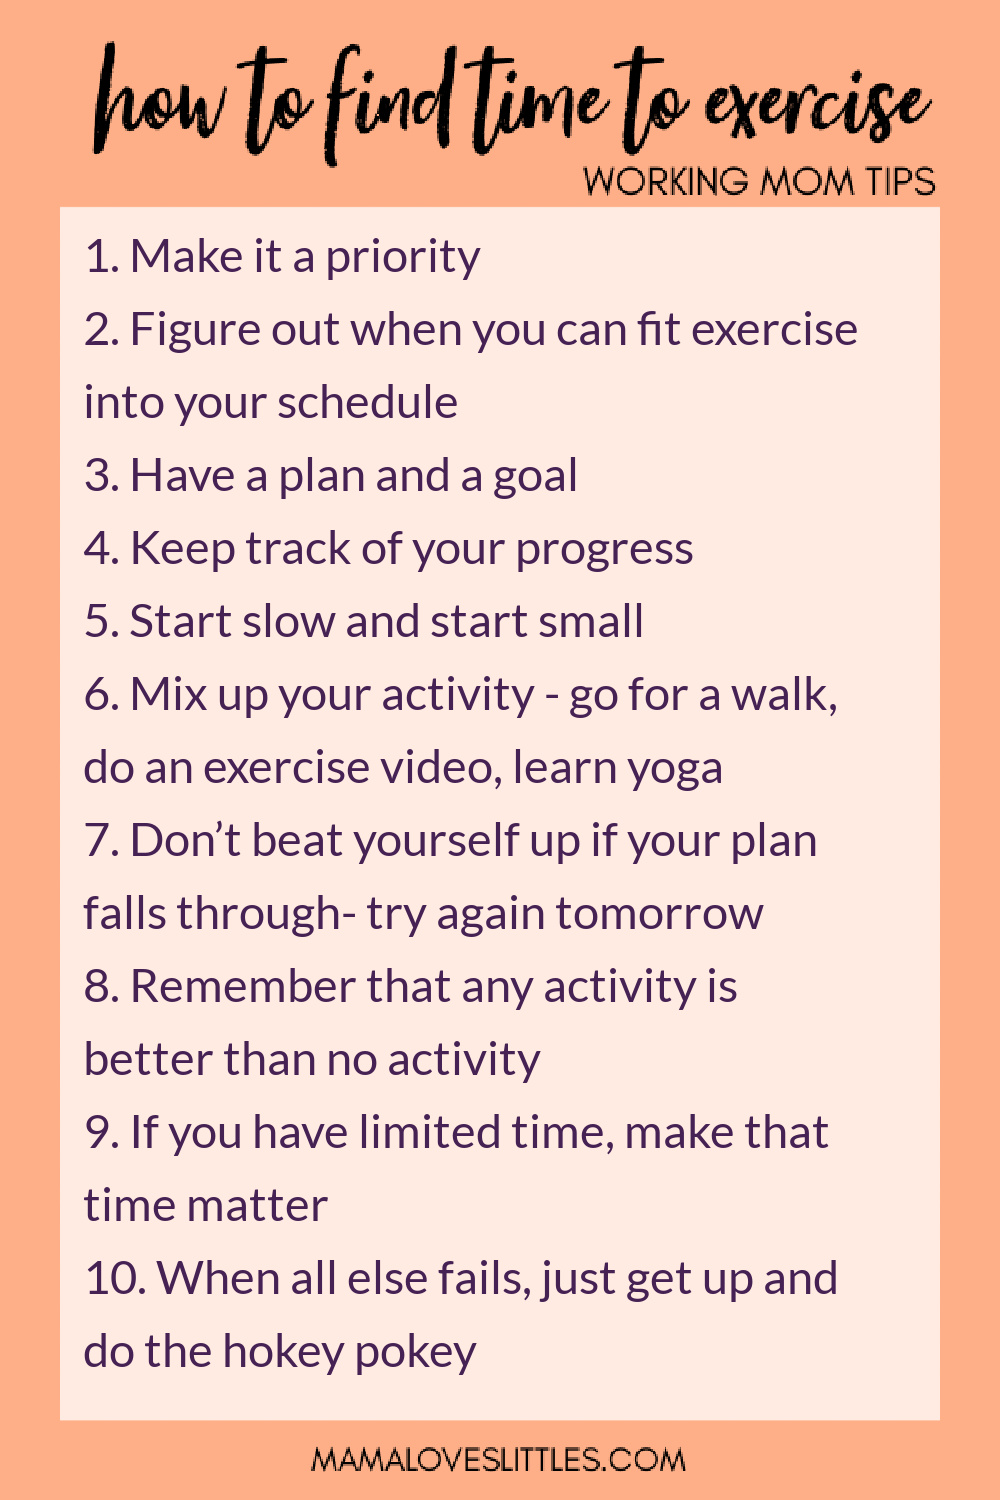 Summary list of how to find time to exercise for working moms